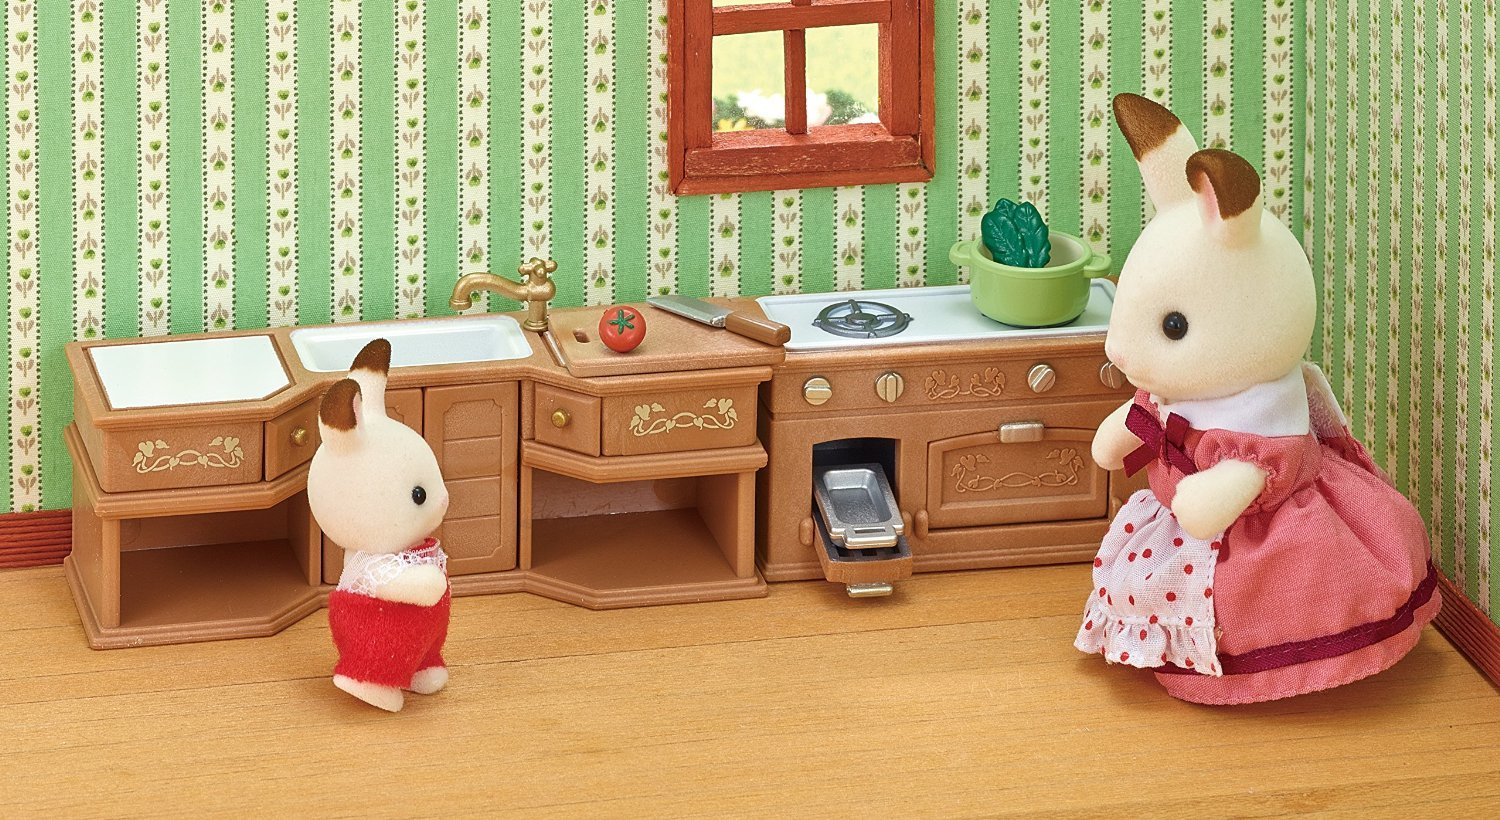 Sylvanian Families: Kitchen Stove, Sink & Counter Top image